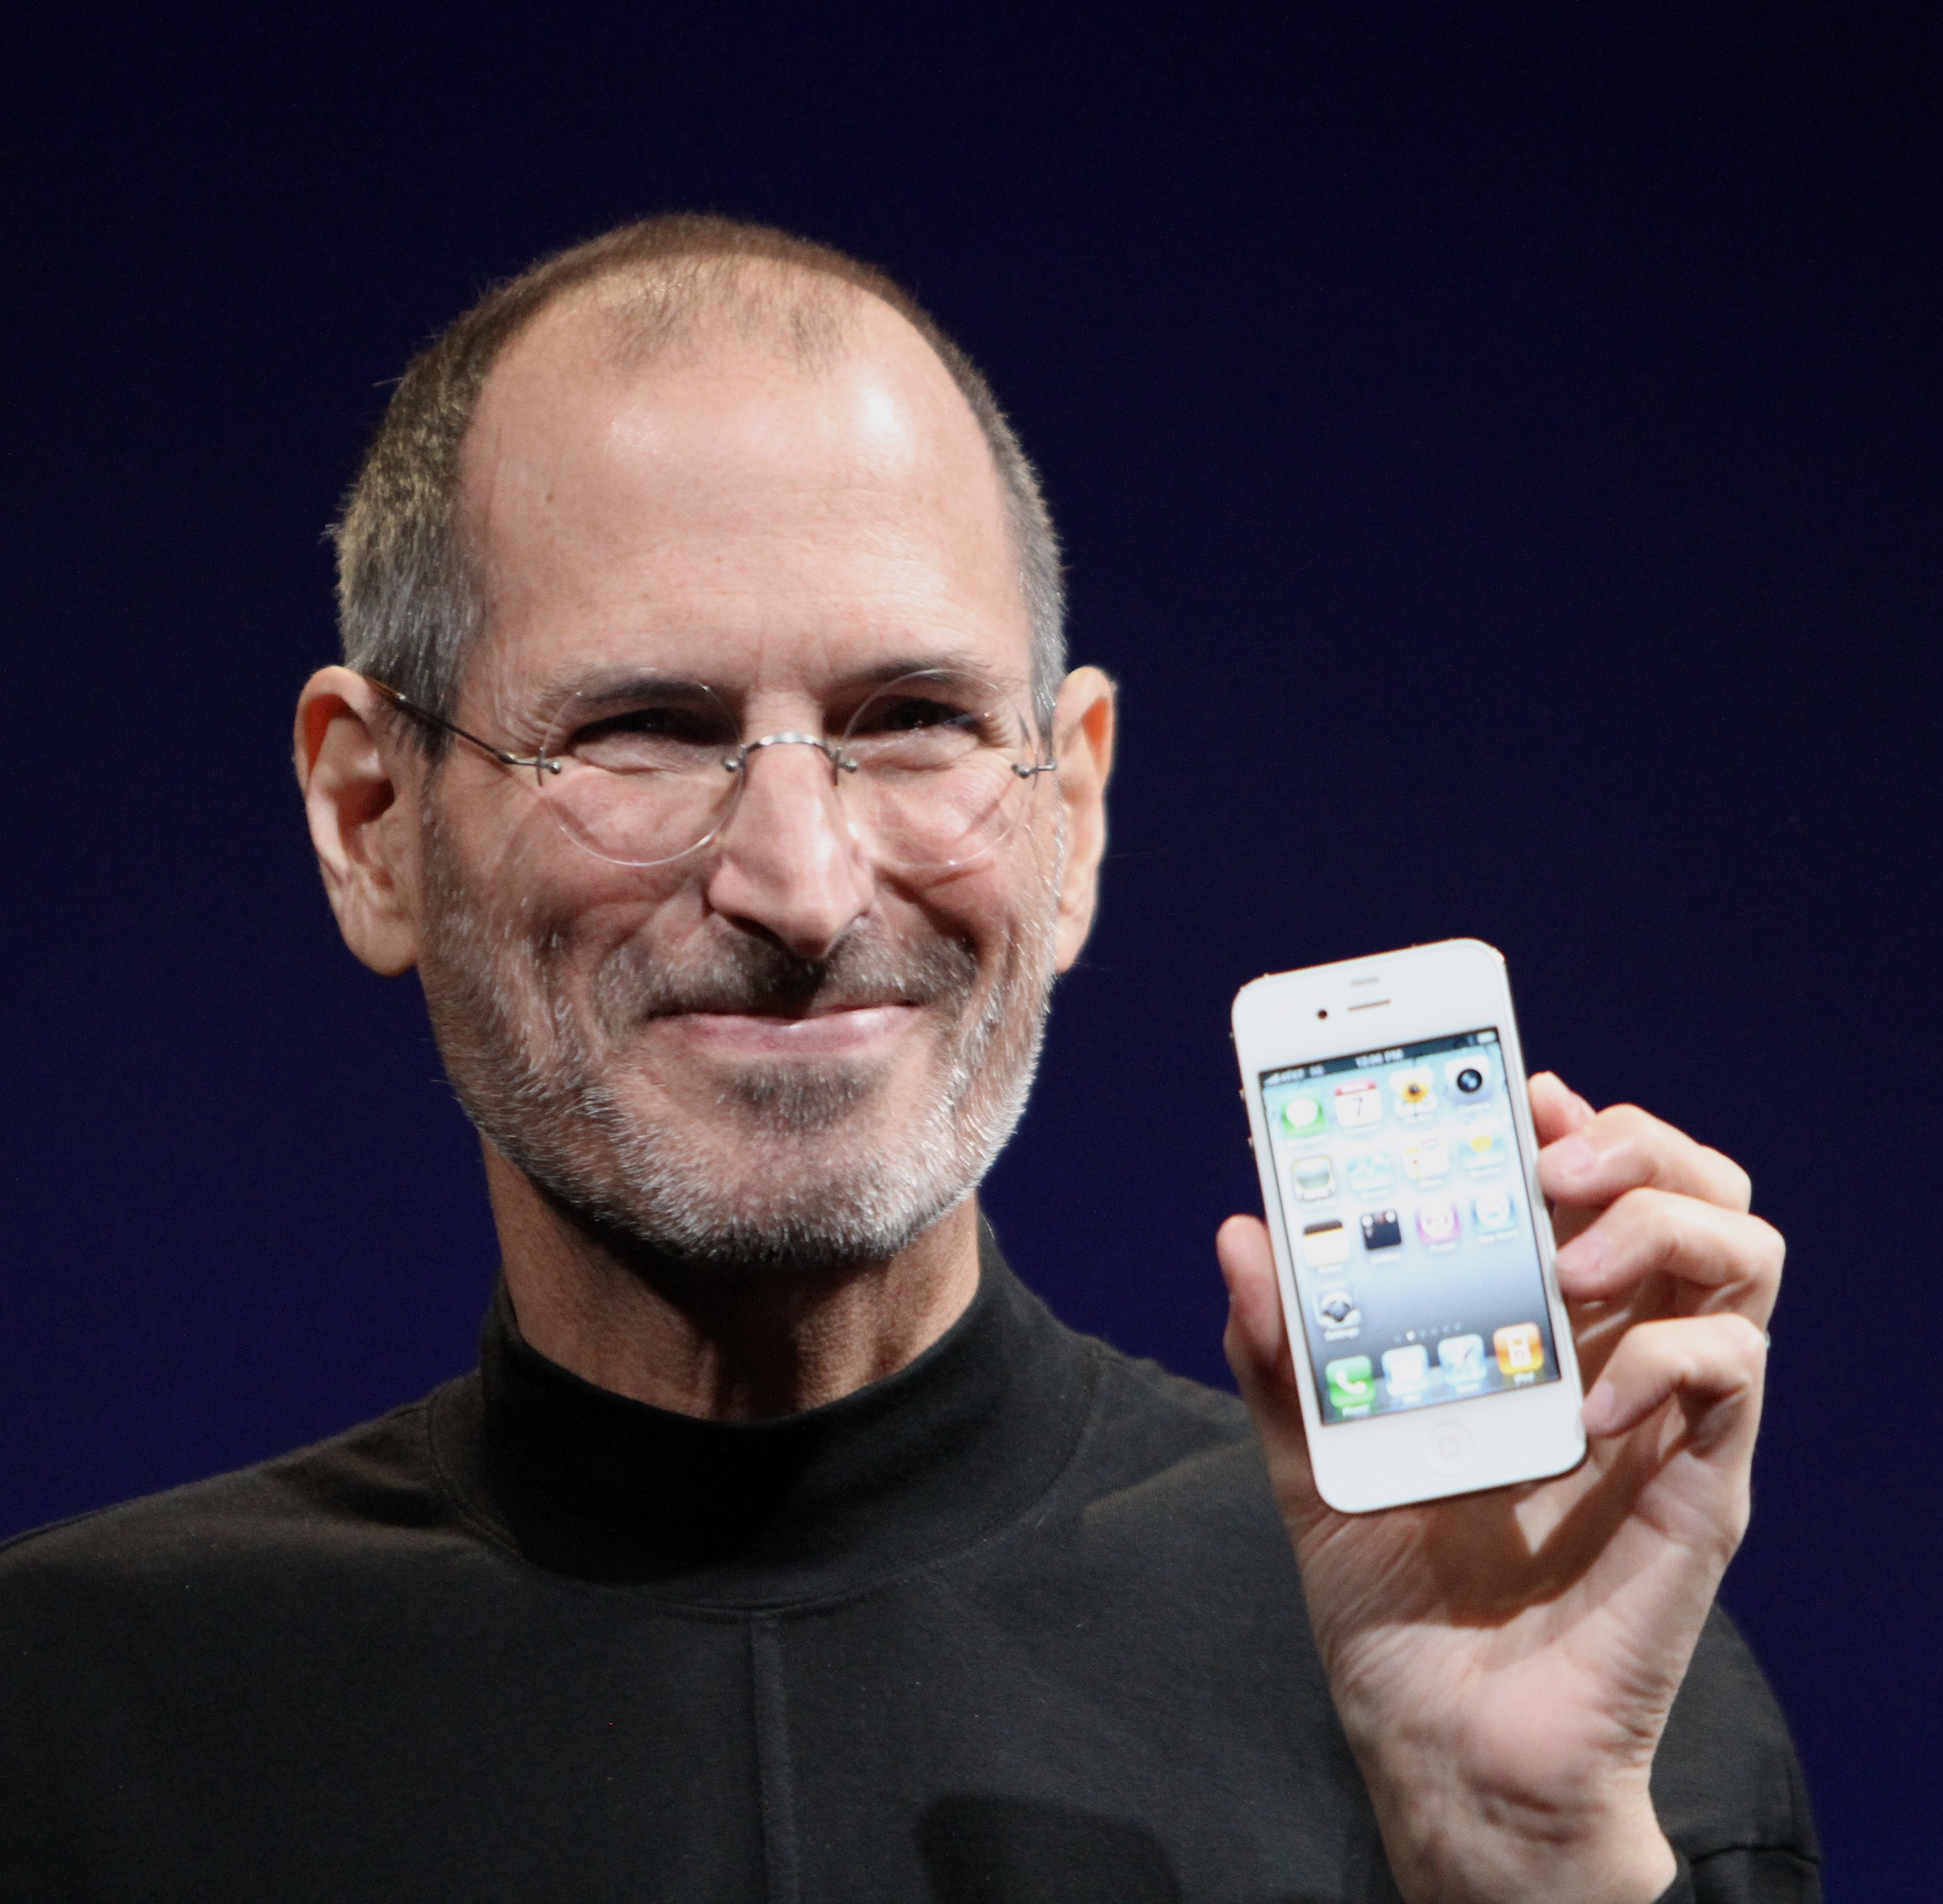 Steve jobs quits apple